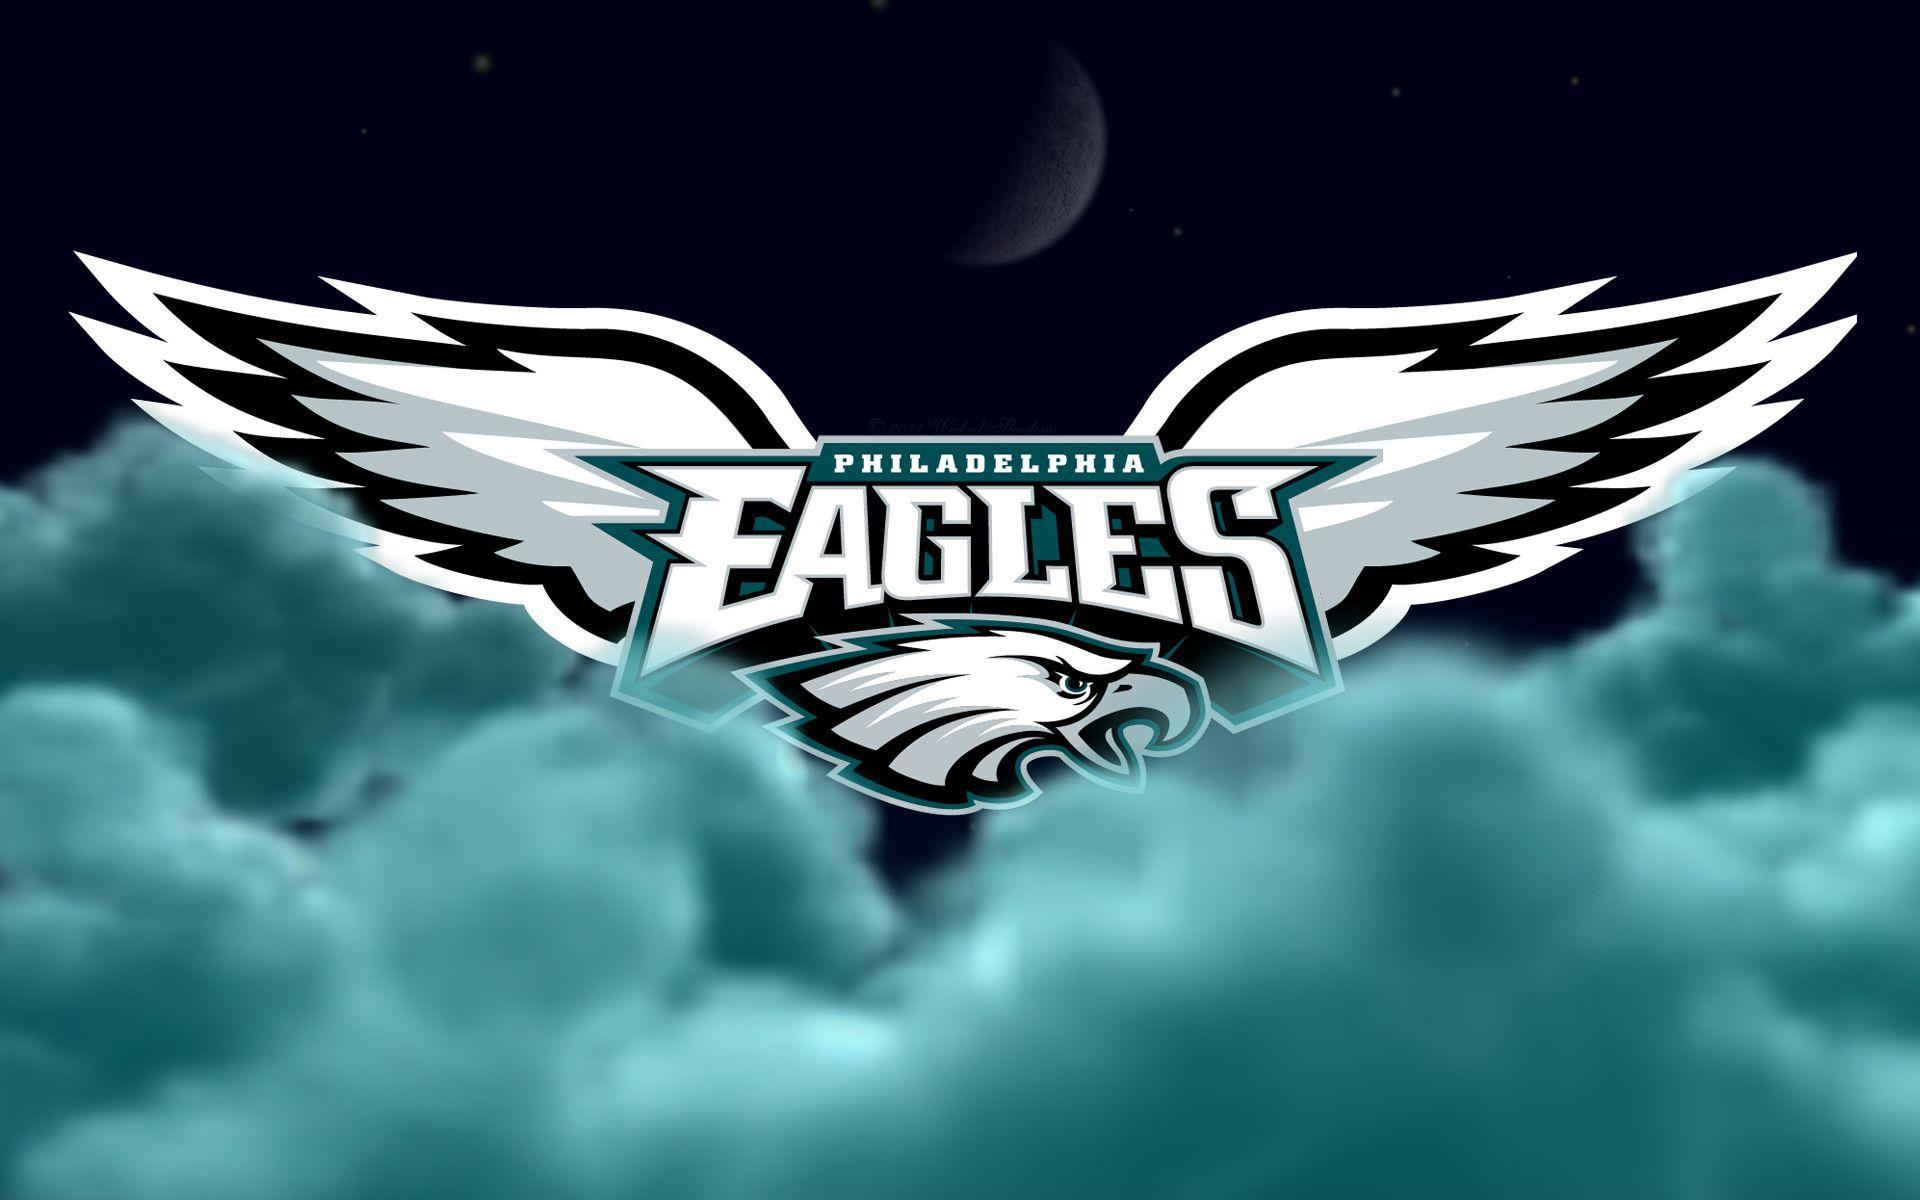 Philadelphia Eagles HD Wallpapers & Pictures